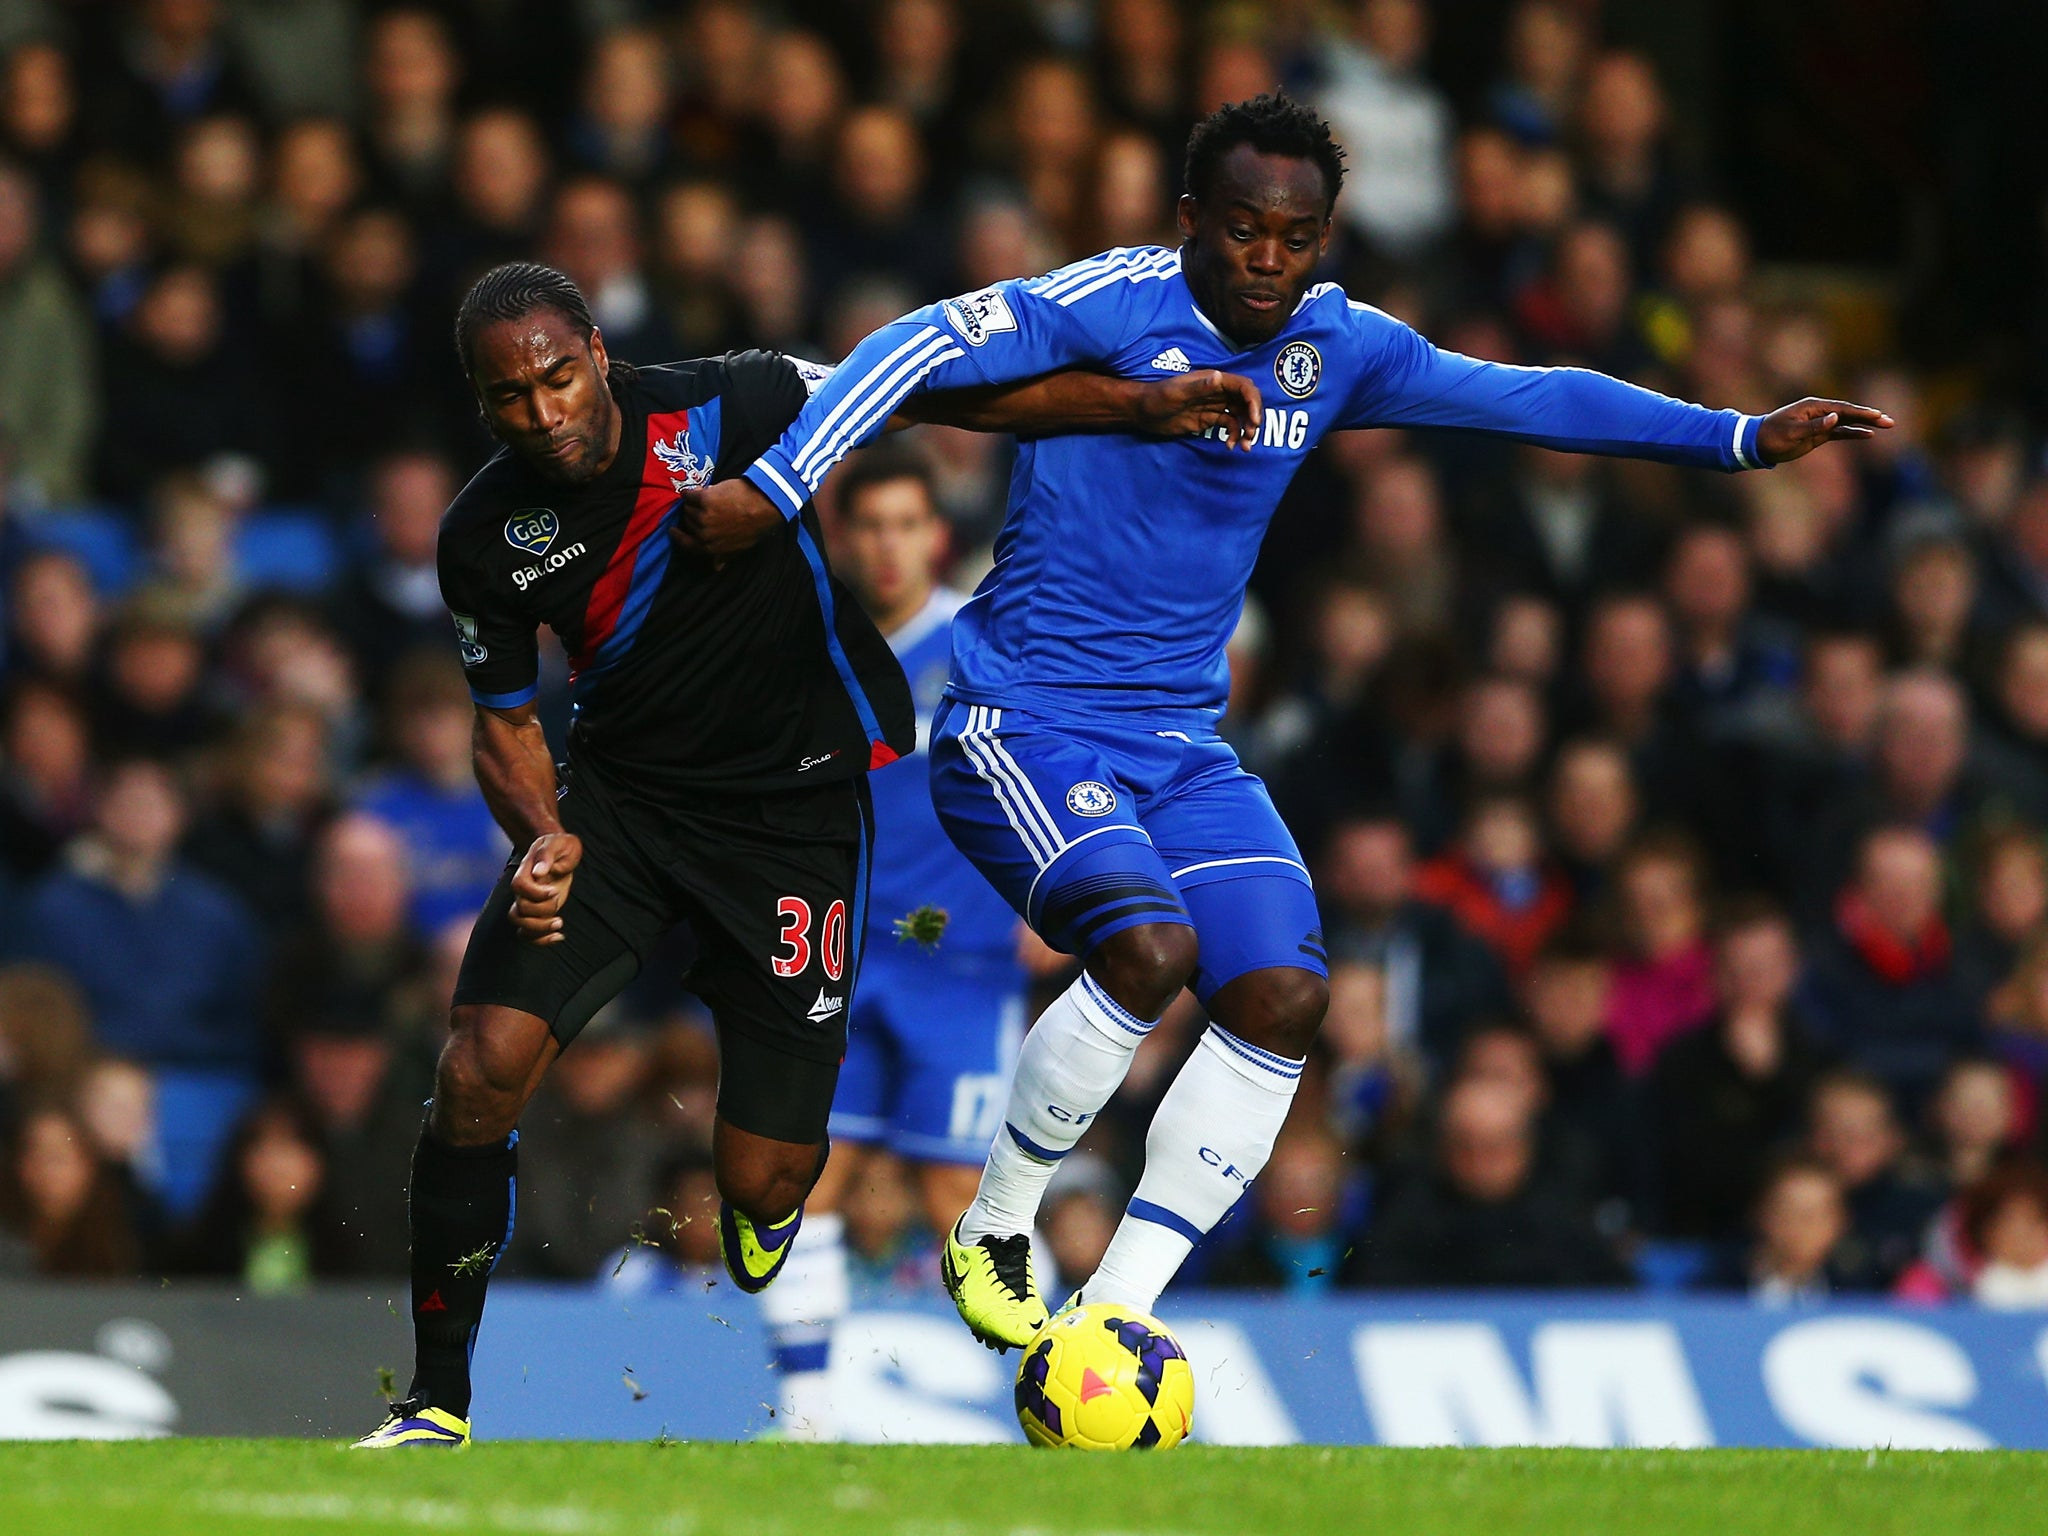 Transfer news Michael Essien pletes switch from Chelsea to AC